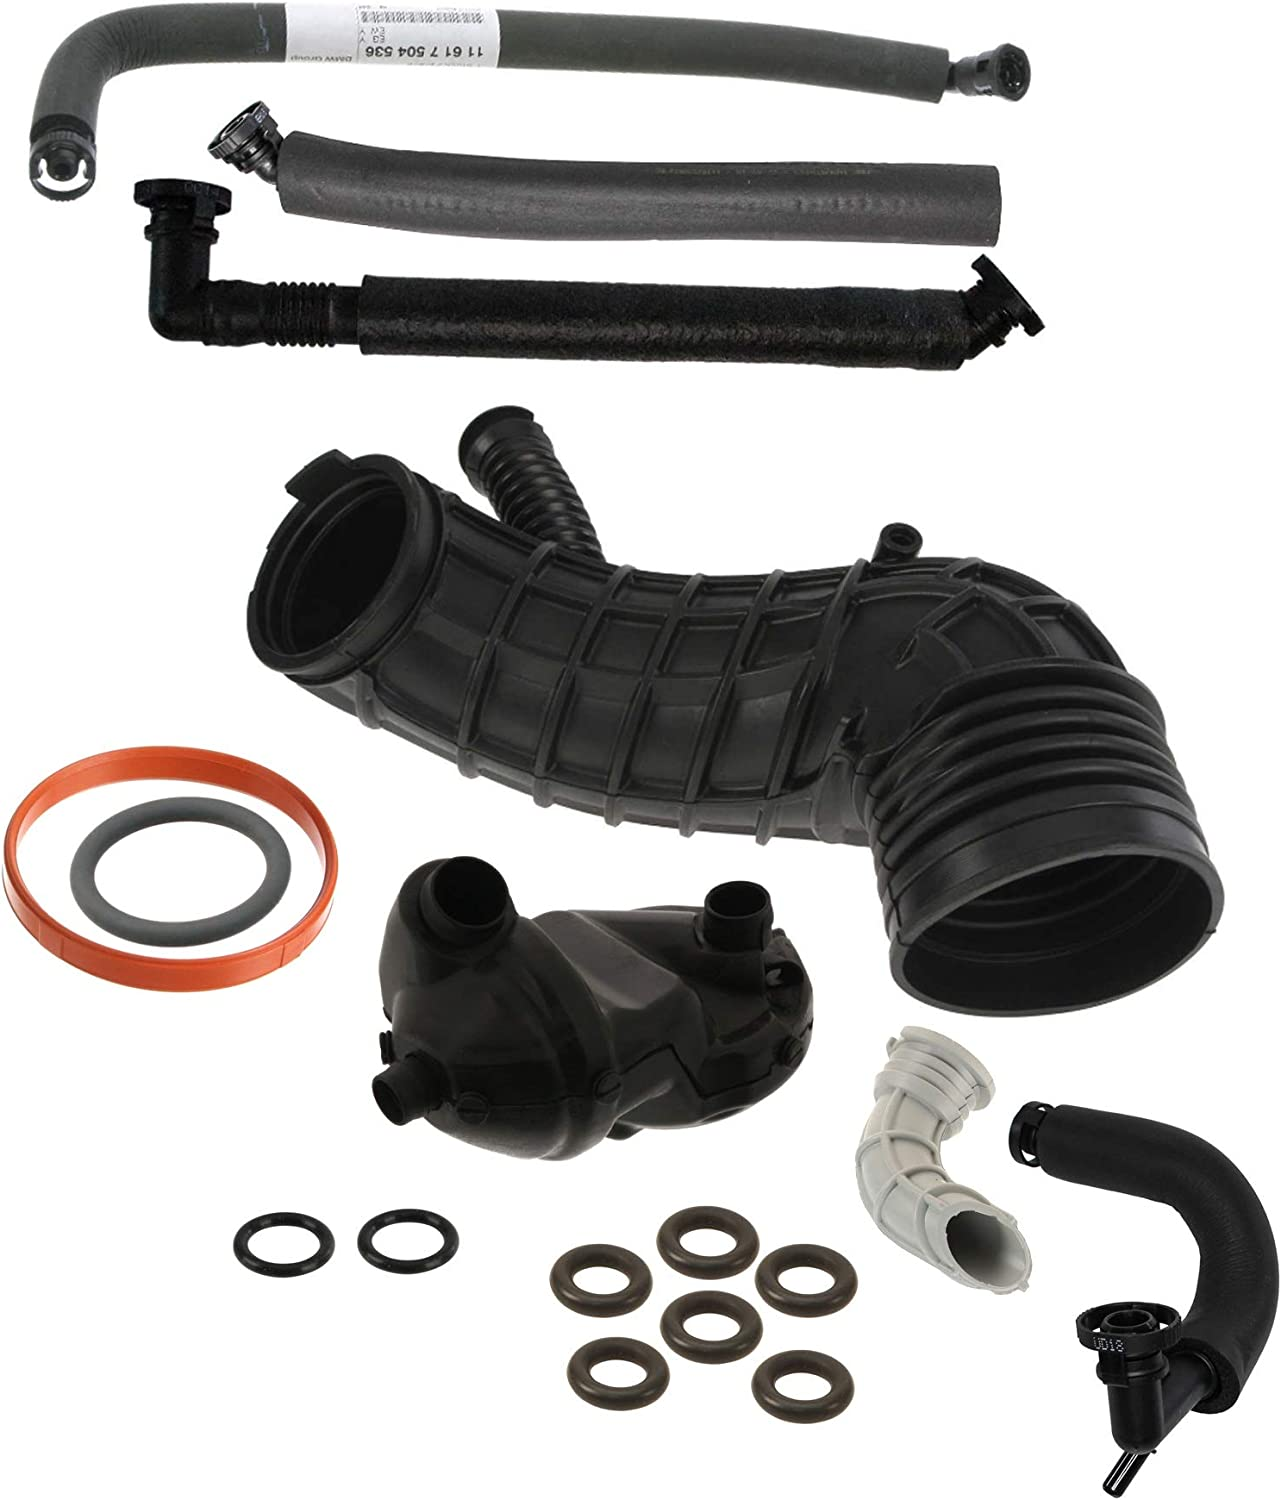 Cold Climate PCV Valve Breather System Kit for BMW E83 X3 3.0i